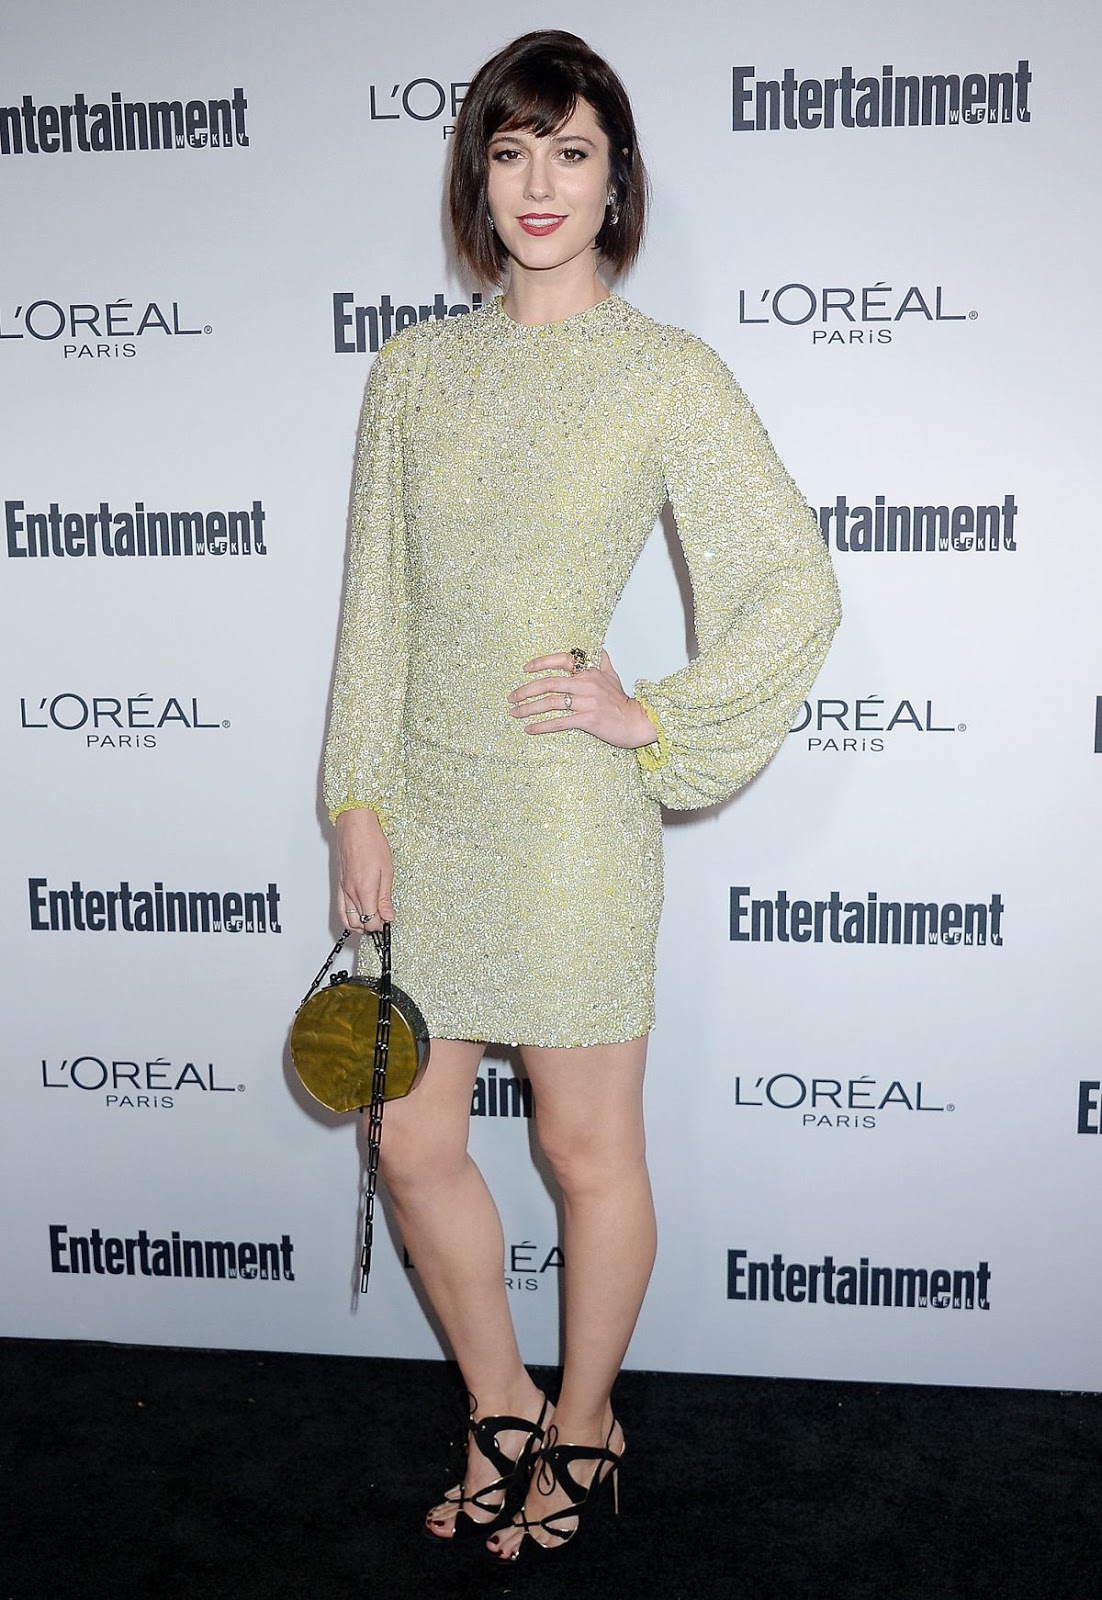 HQ Photos of Mary Elizabeth Winstead At Entertainment Weekly 2016 Pre-Emmy Party In Los Angeles